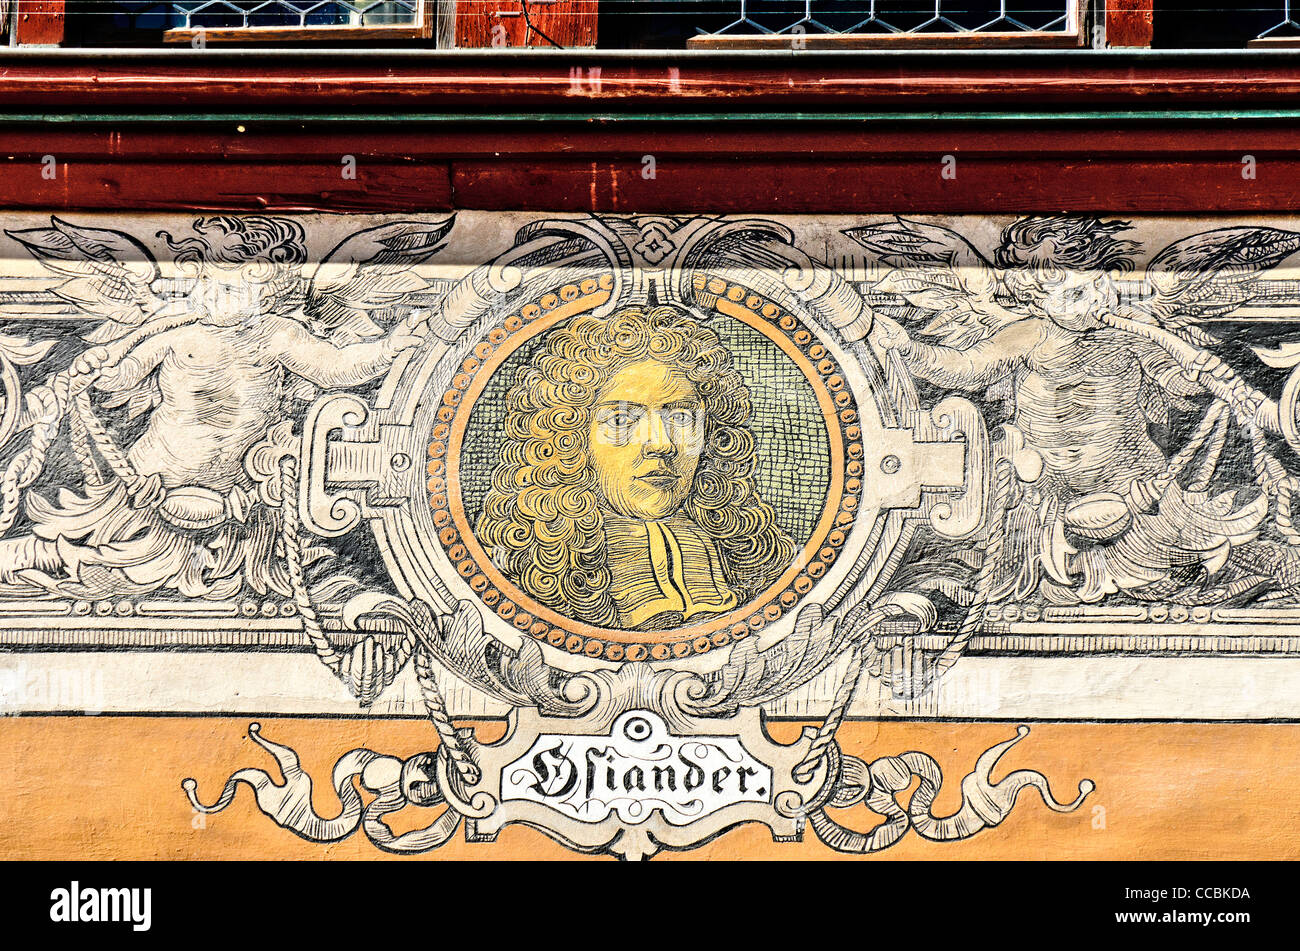 Painted Image of Johann Osiander on facade of the town hall of Tuebingen, 'Portraet Fassade Tuebinger Rathaus' - Stock Image